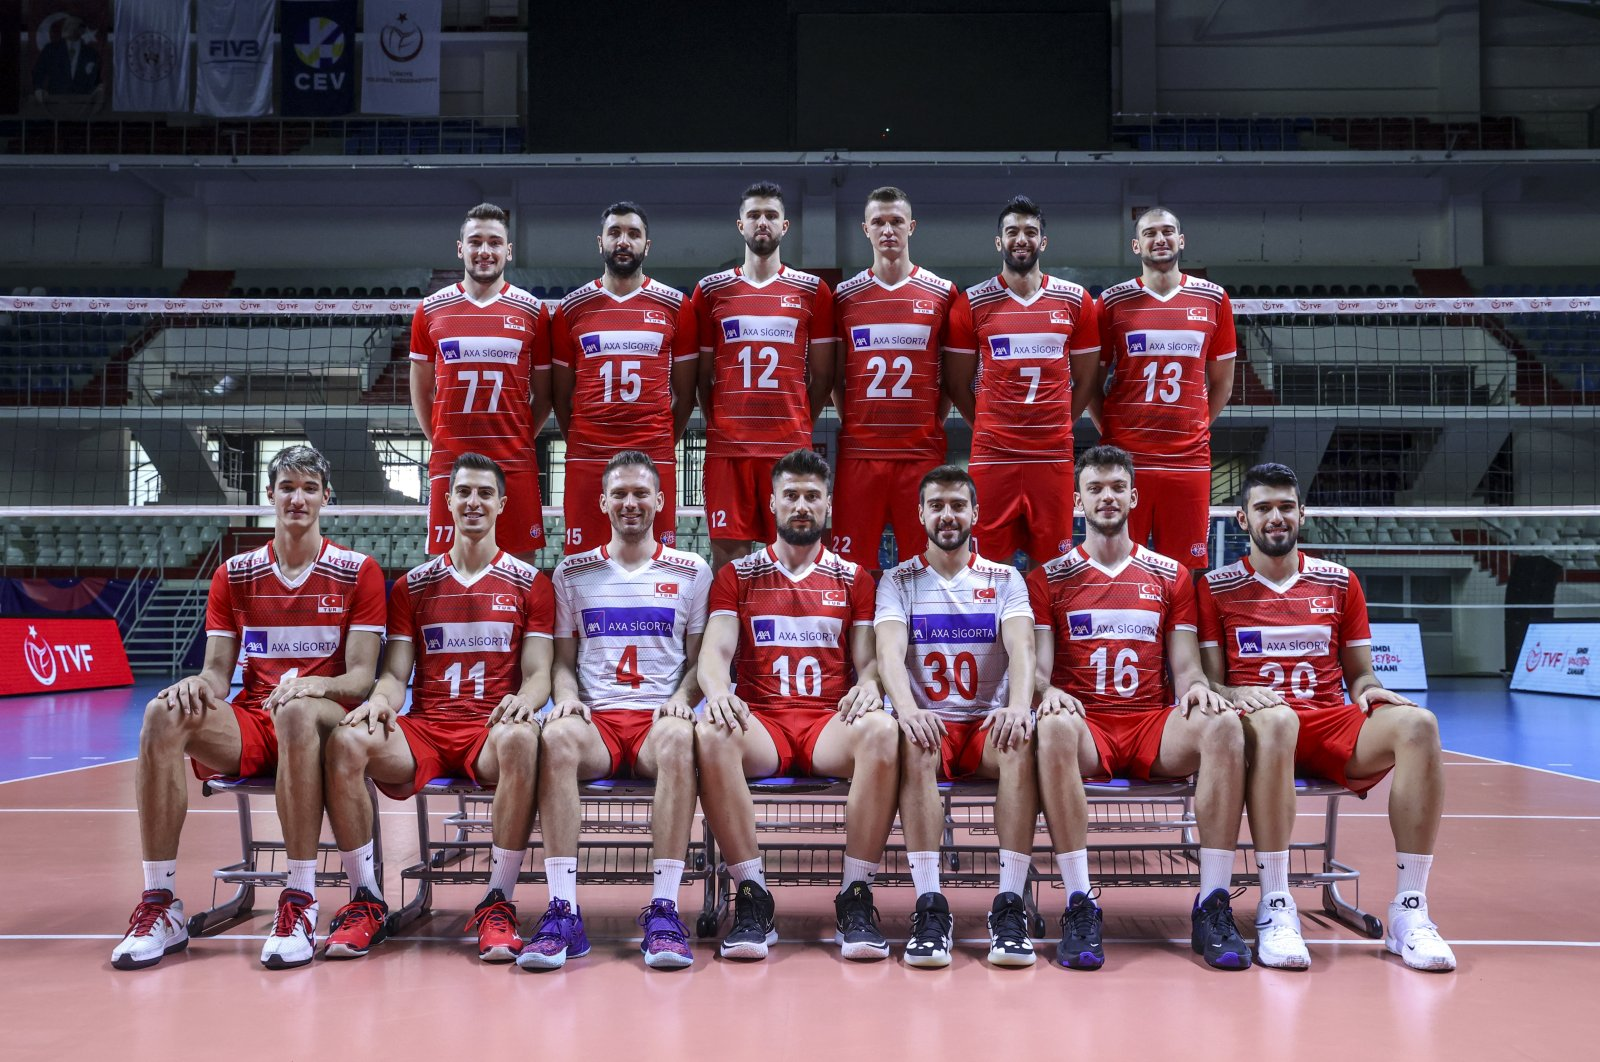 The Turkish men's national volleyball team poses for a group photo ahead of their 2021 CEV EuroVolley men's competition in Finland, Istanbul, Turkey, Aug. 27, 2021. (AA Photo)